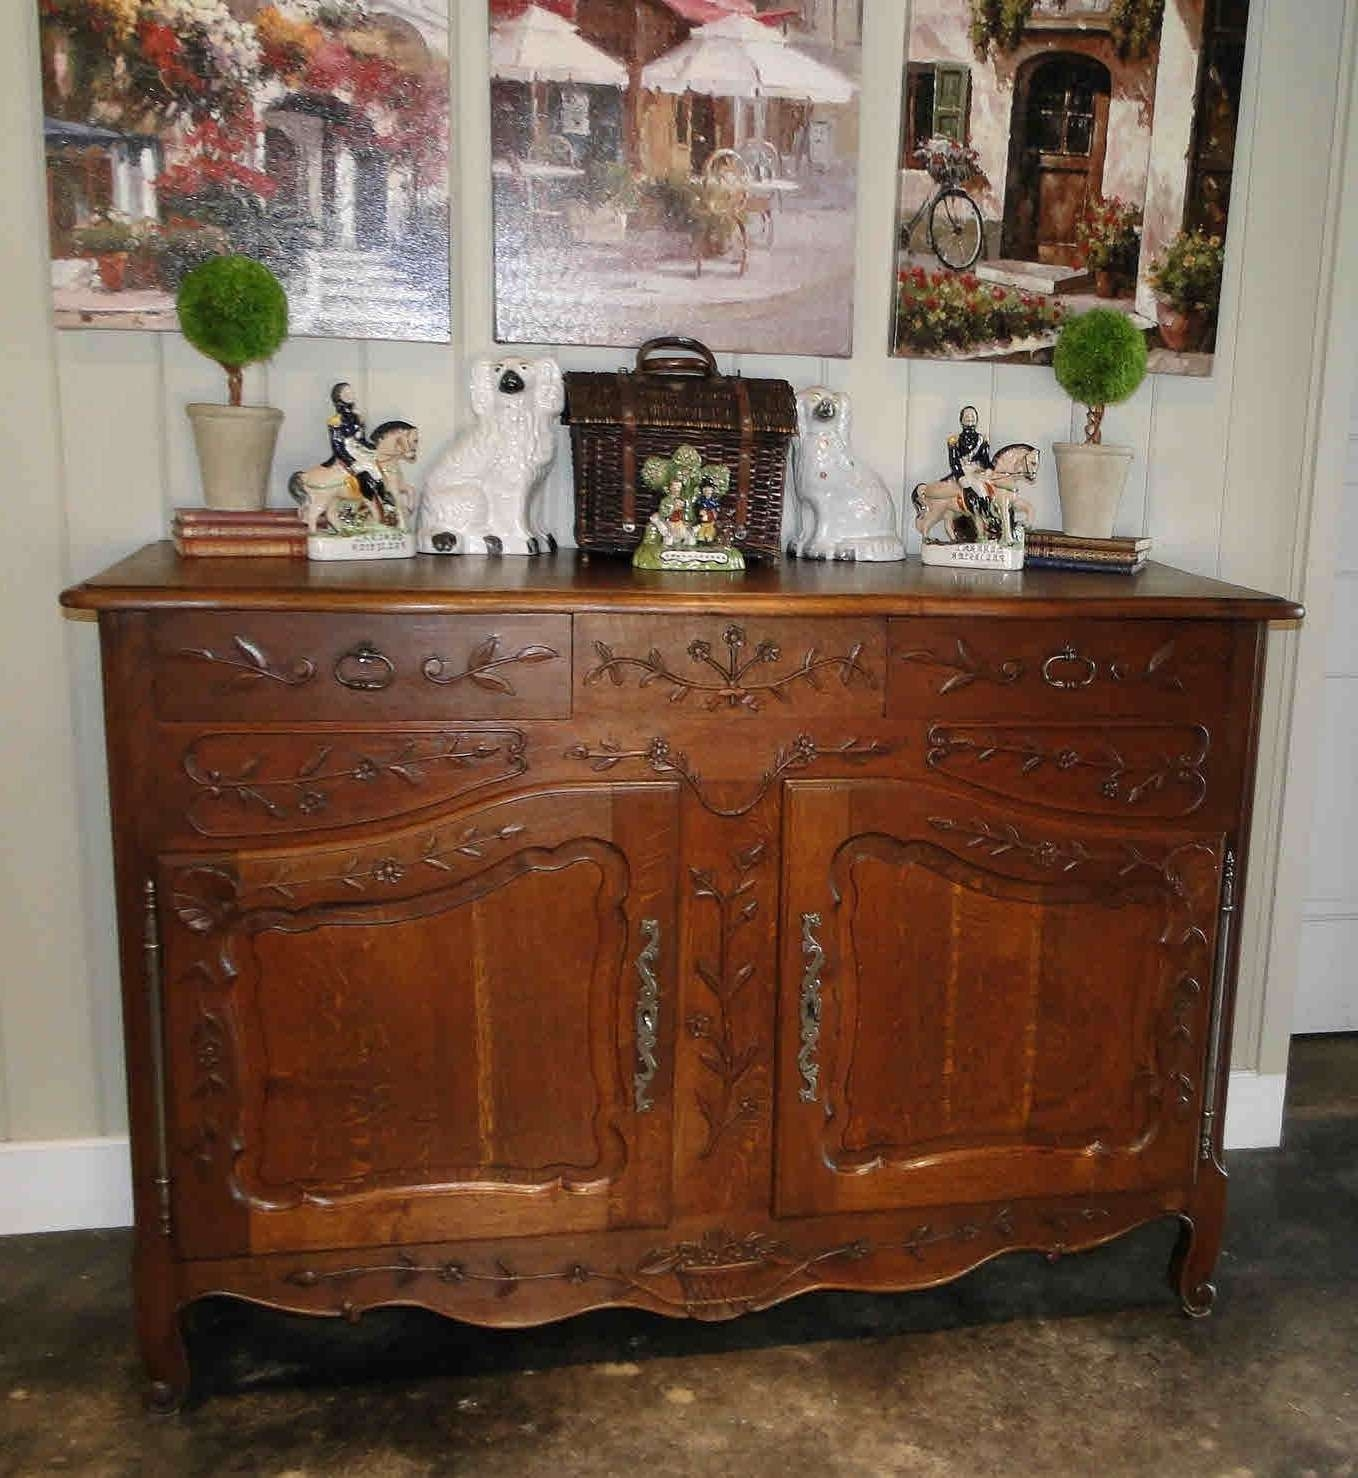 Countryboards And Buffets Plans Kitchen French Distressed 95 Regarding Distressed Sideboards And Buffets (View 7 of 20)